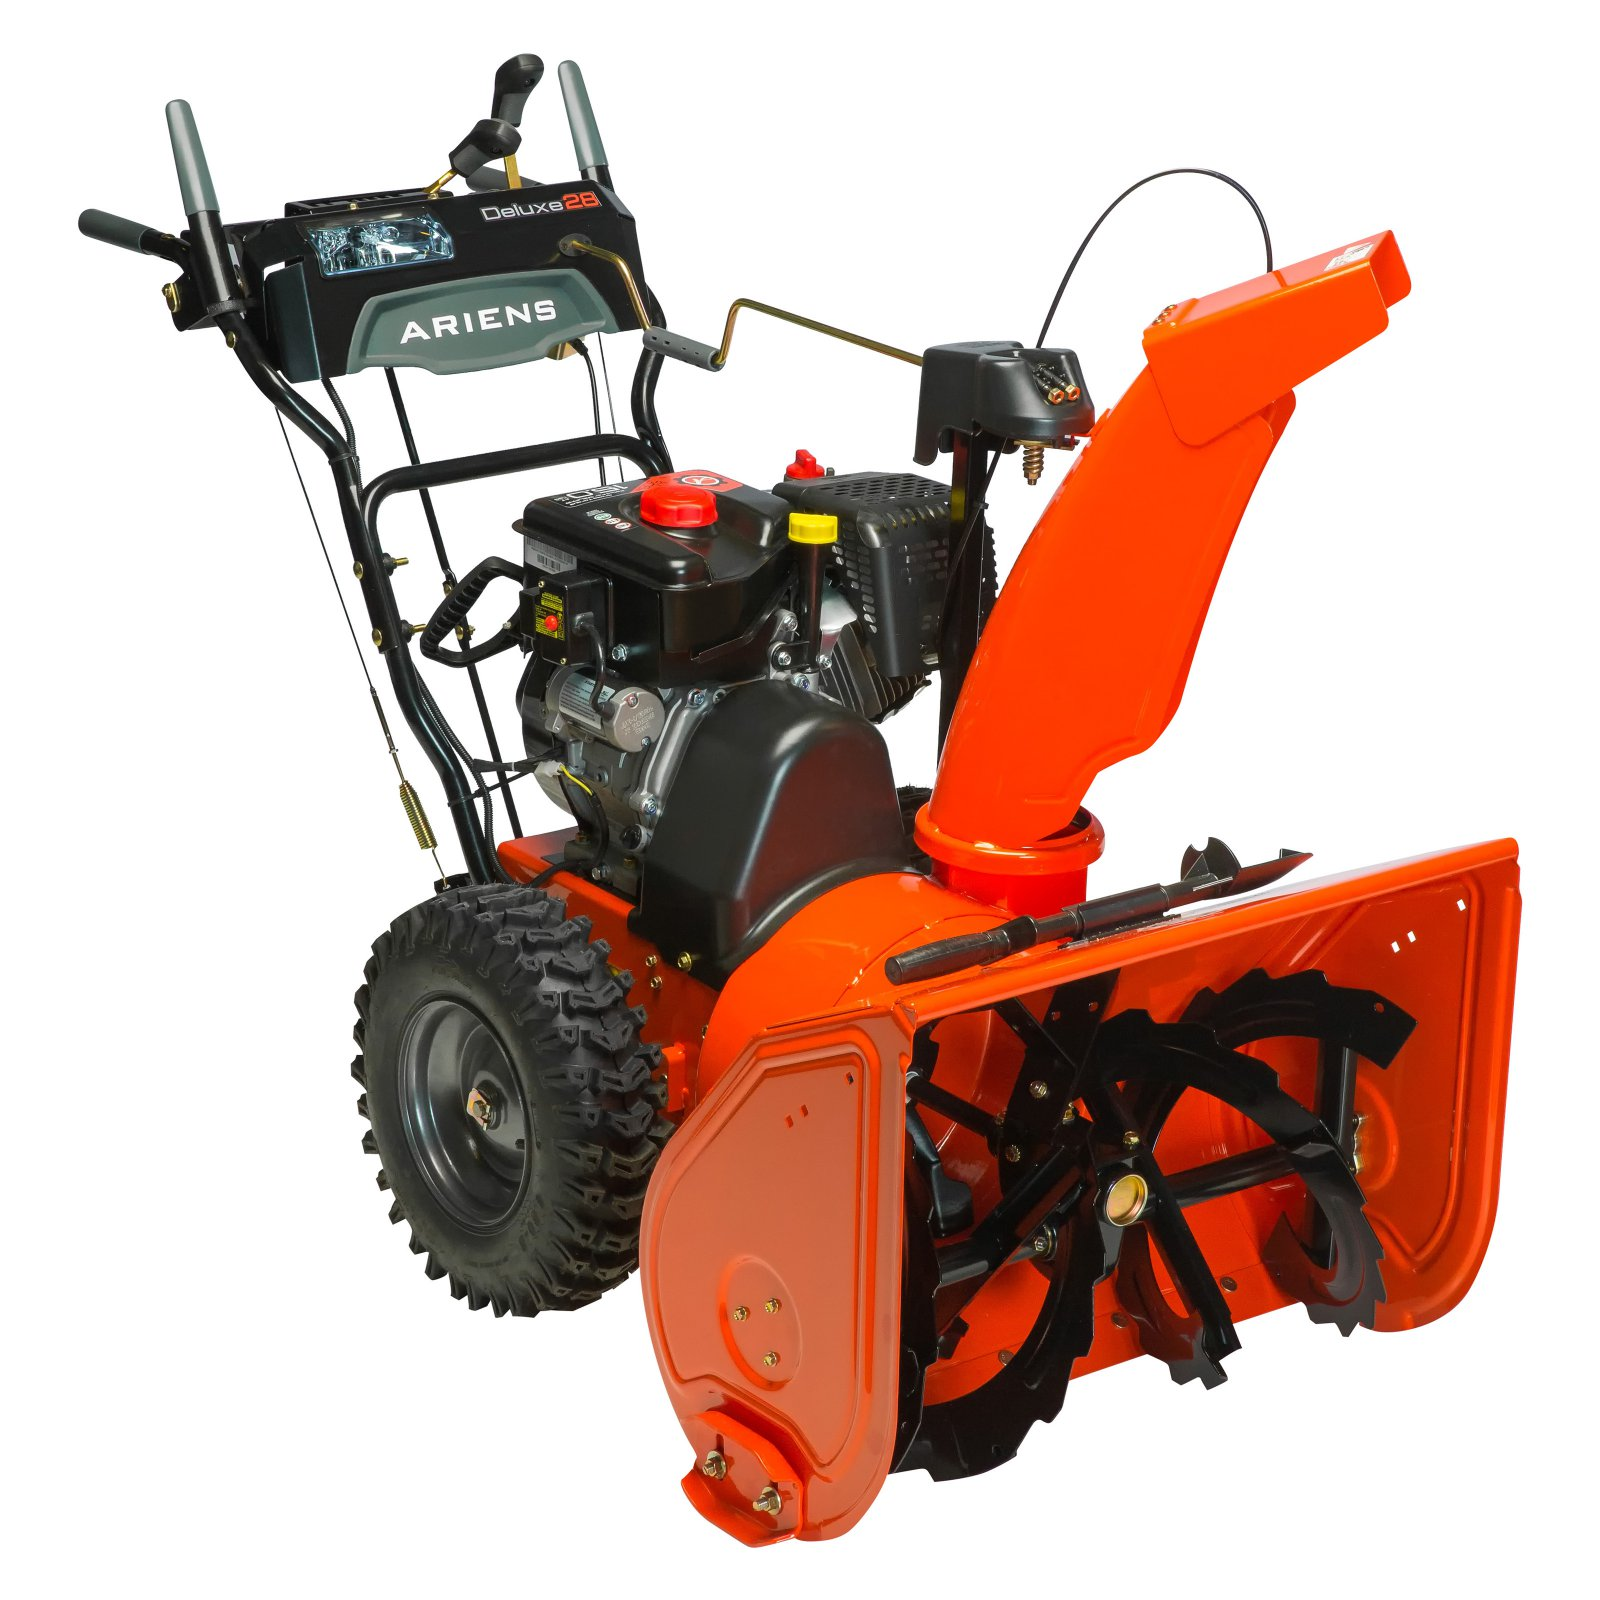 Ariens Deluxe 28 in. 2-Stage Electric Start Gas Snow Blower with Auto-Turn Steering by